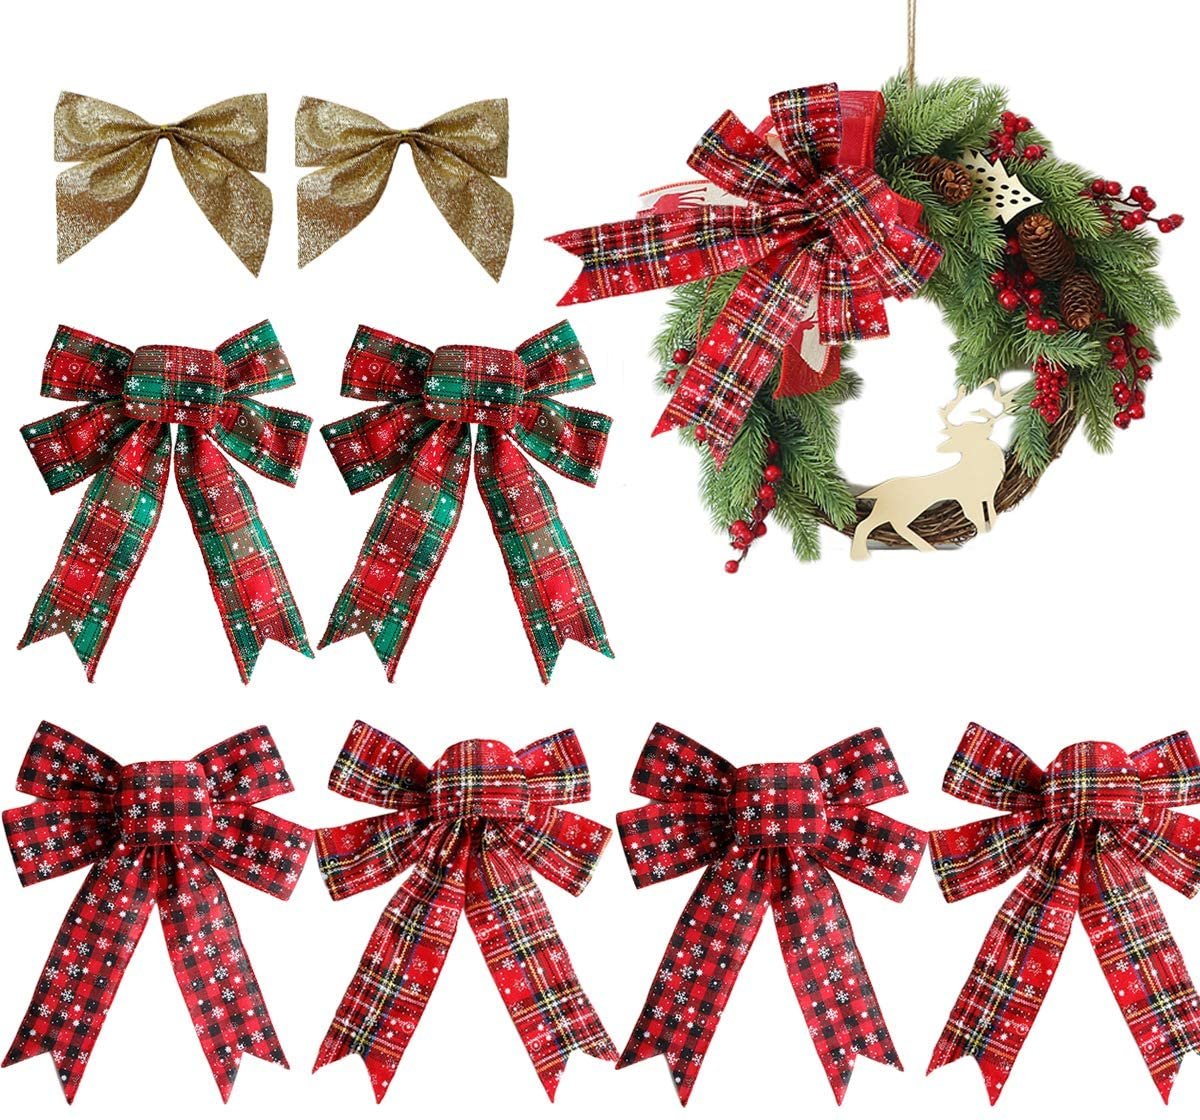 Intelligence 8 Pcs 10.2 x 12.6 inch Christmas Plaid Bows, Red Buffalo Plaid Bows, Enlarge Christmas Wreath Bow White Snow Bow for Outdoor Christmas Ribbon Christmas Tree Crafts DIY Bow Decoration